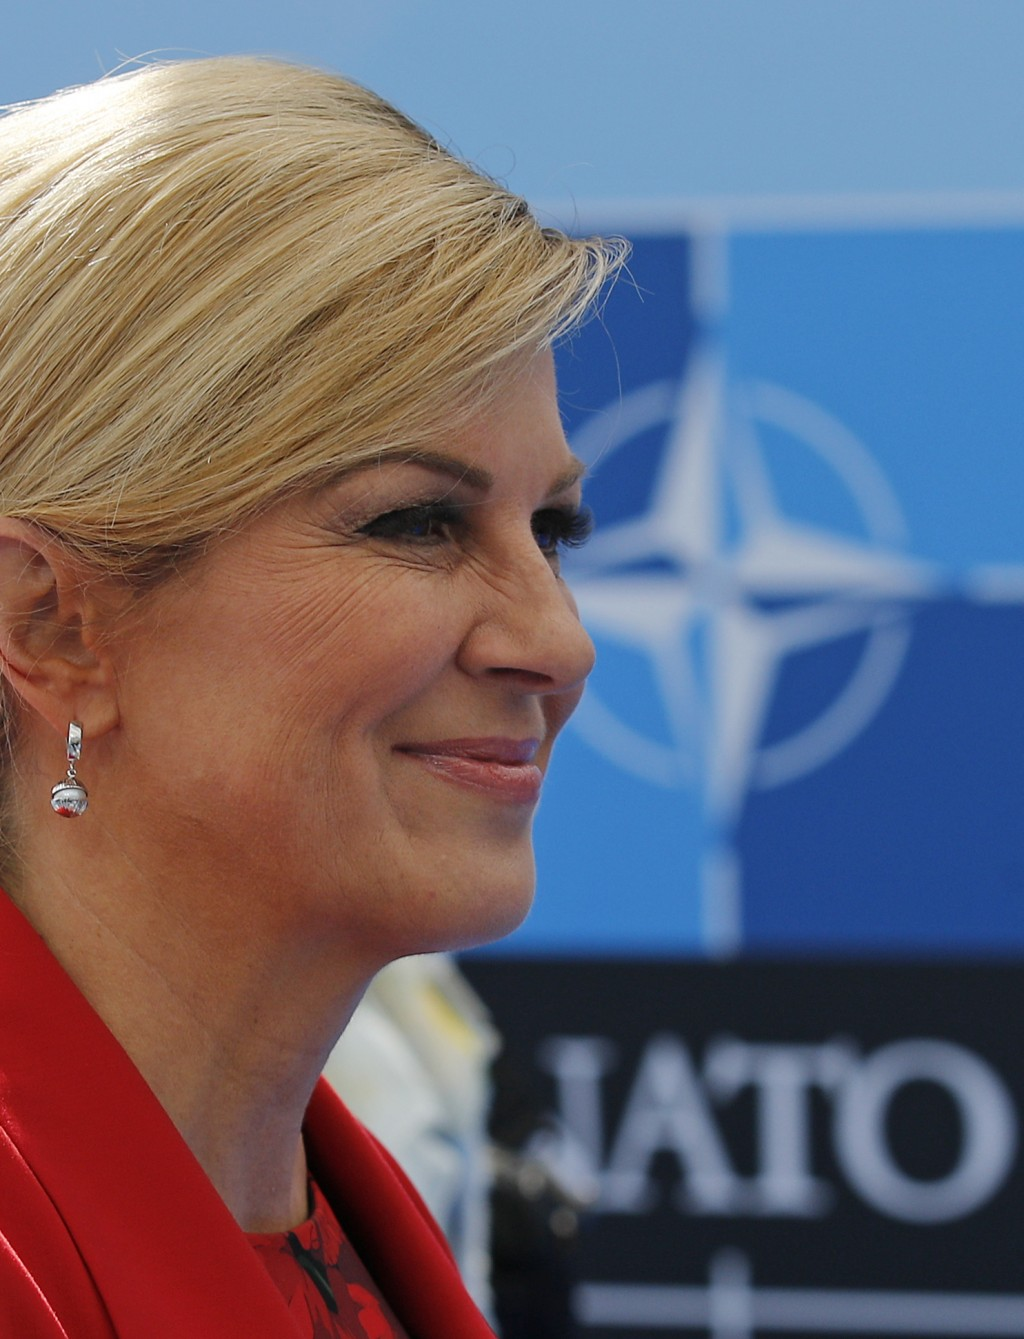 Croatian President Kalinda Grabar-Kitarovic arrives for a summit of heads of state and government at NATO headquarters in Brussels on Wednesday, July